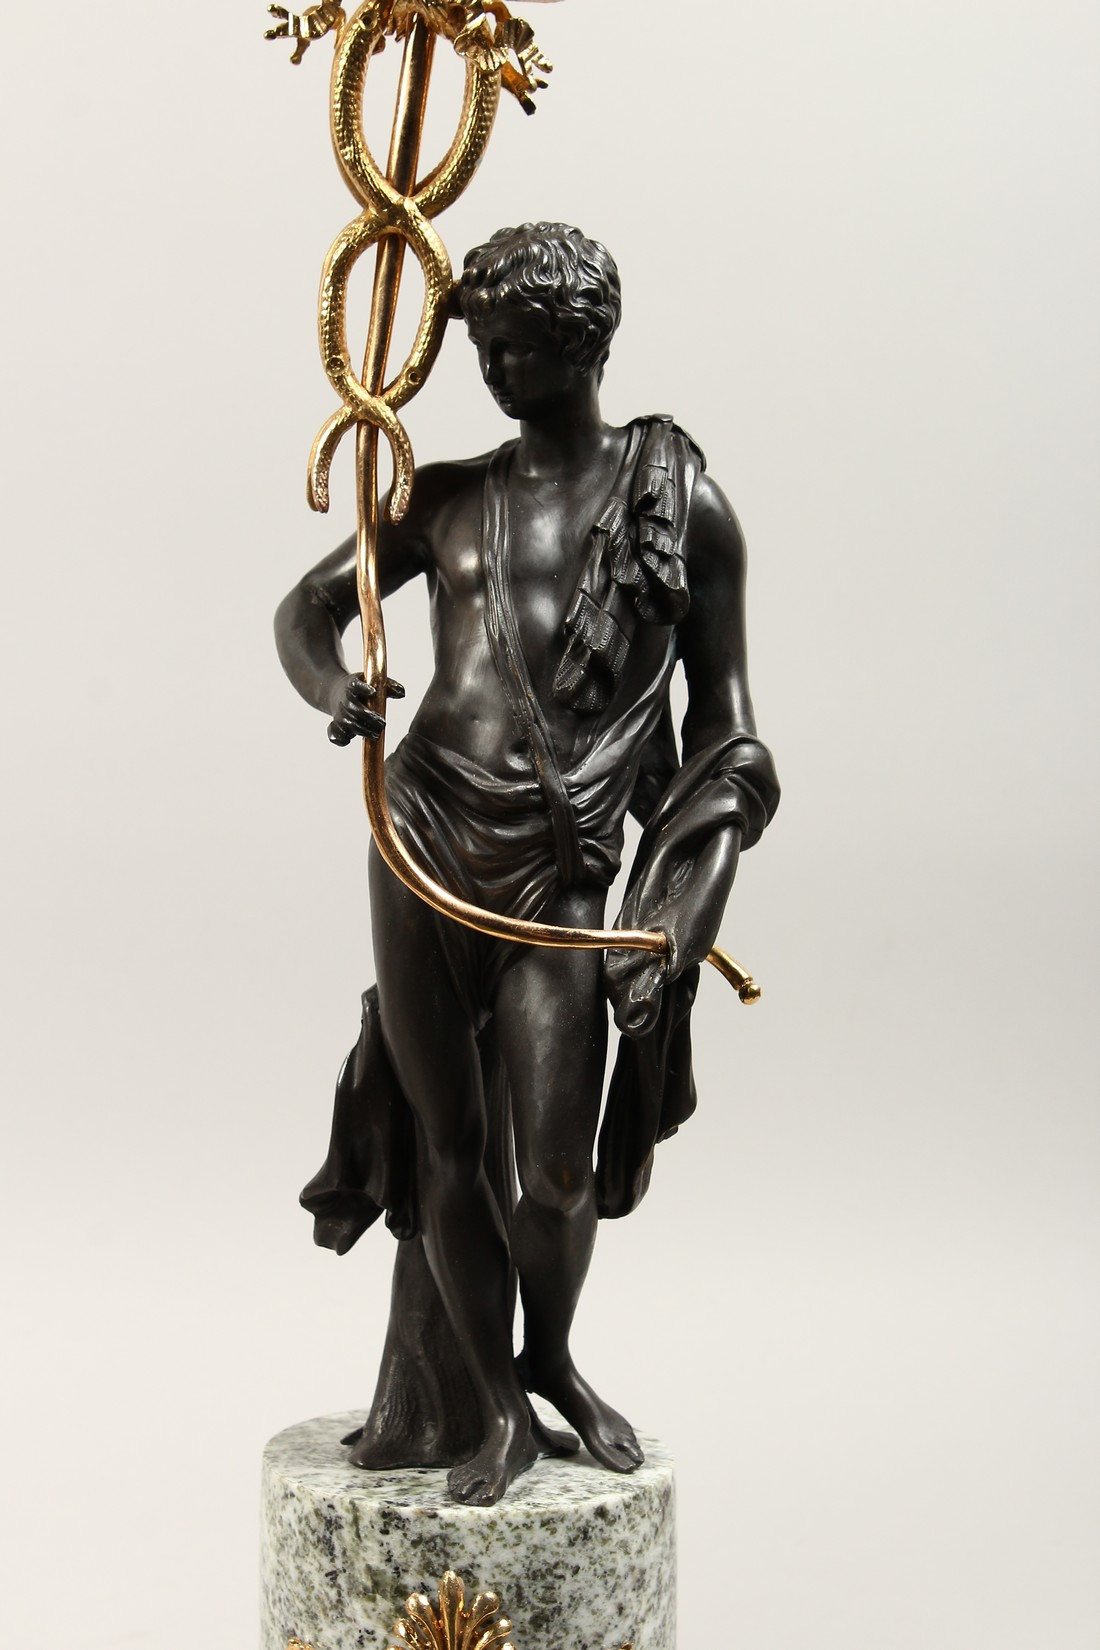 A LARGE PAIR OF THOMAS HOPE DESIGN, ORMOLU AND BRONZE CLASSICAL CANDLESTICKS with a pair of - Image 3 of 5